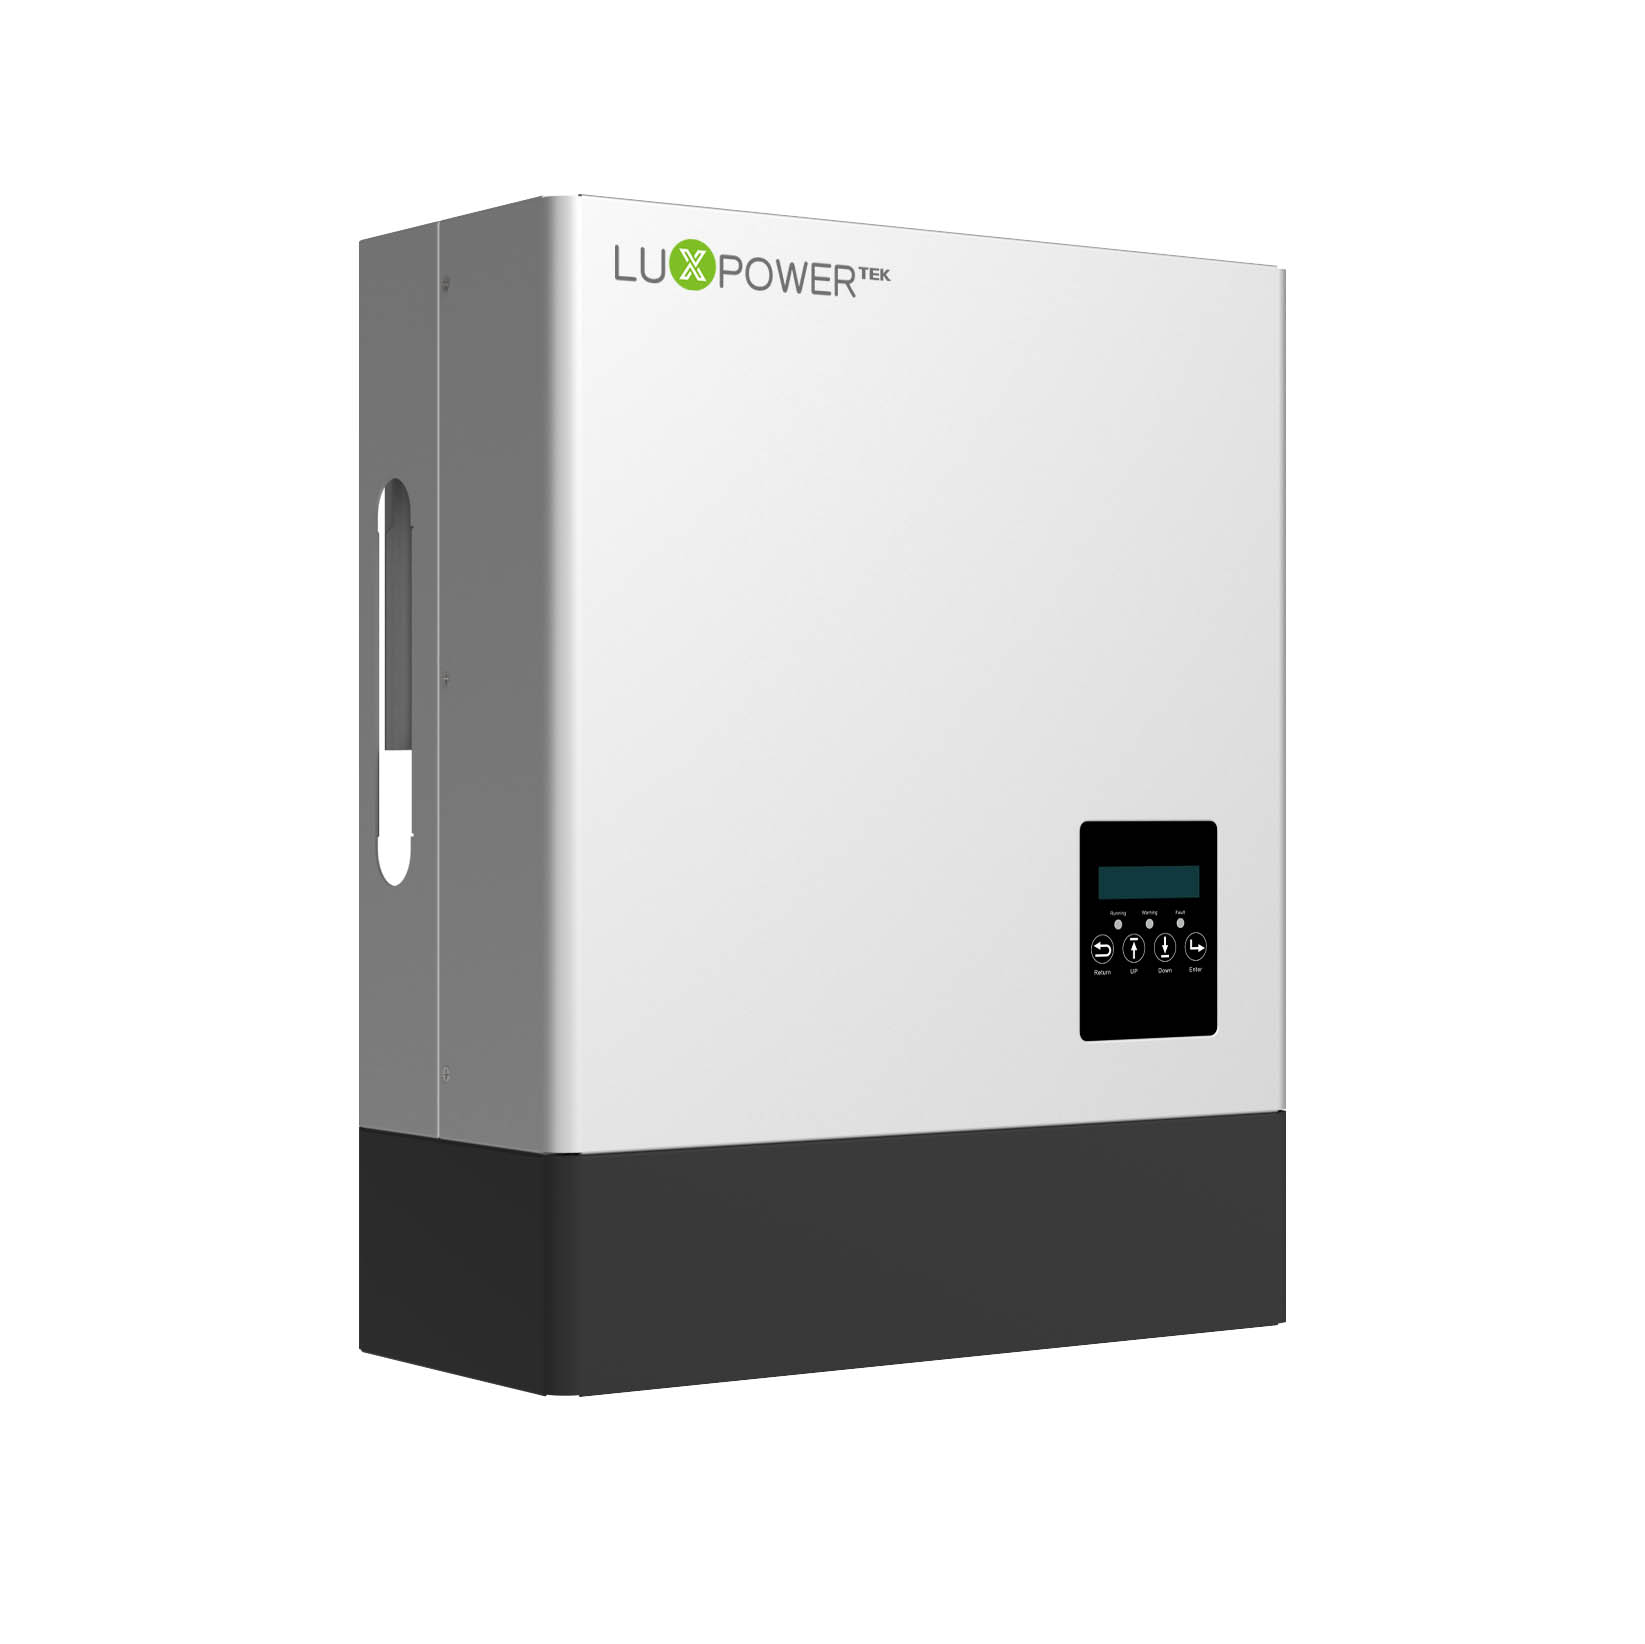 Factory For Luxpowertek - Hybrid-HB – LUX POWER